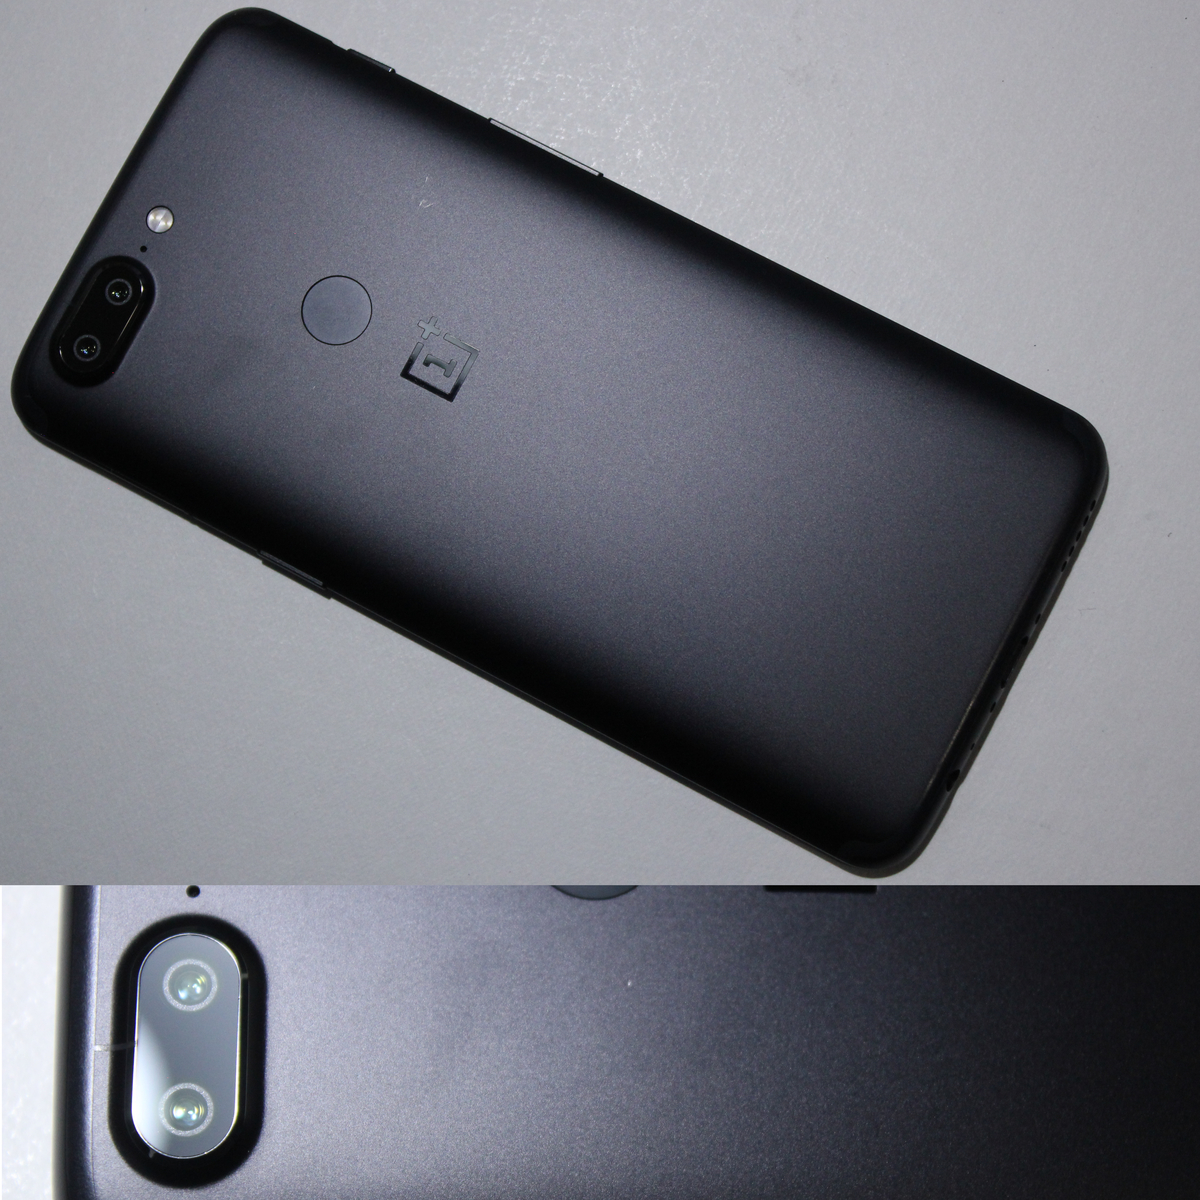 [ 8GB/128GB ] OnePlus 5T A5010 SIMフリー Android 8 アンドロイド Android8 アンドロイド8 /1_画像2